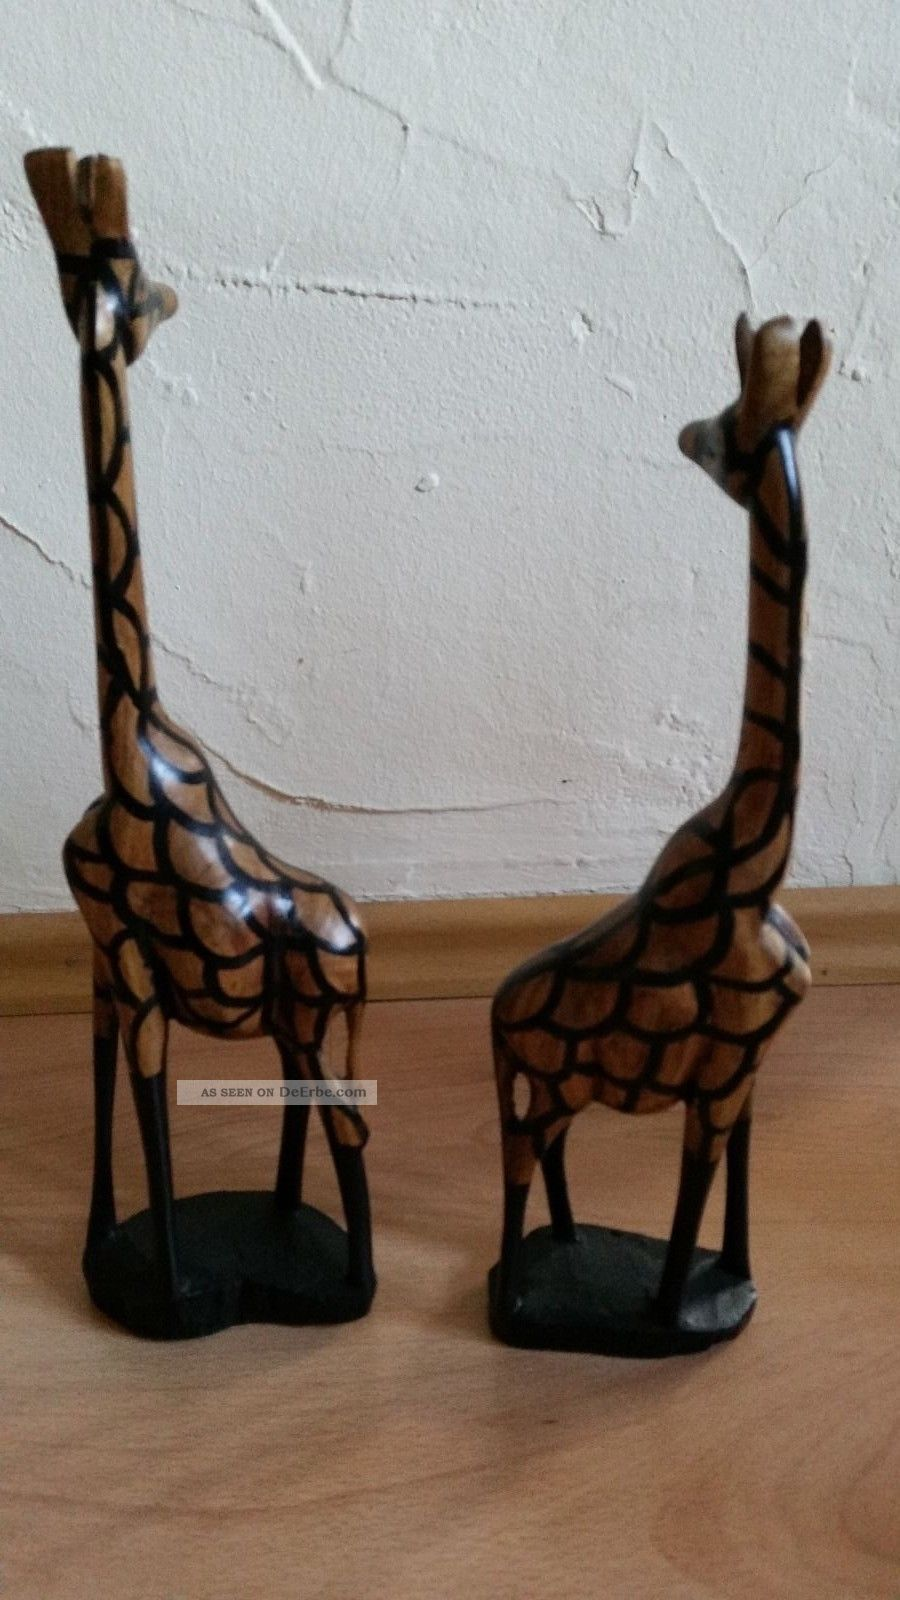 afrikanische figuren giraffen aus massivholz handgeschnitzt westafrika. Black Bedroom Furniture Sets. Home Design Ideas